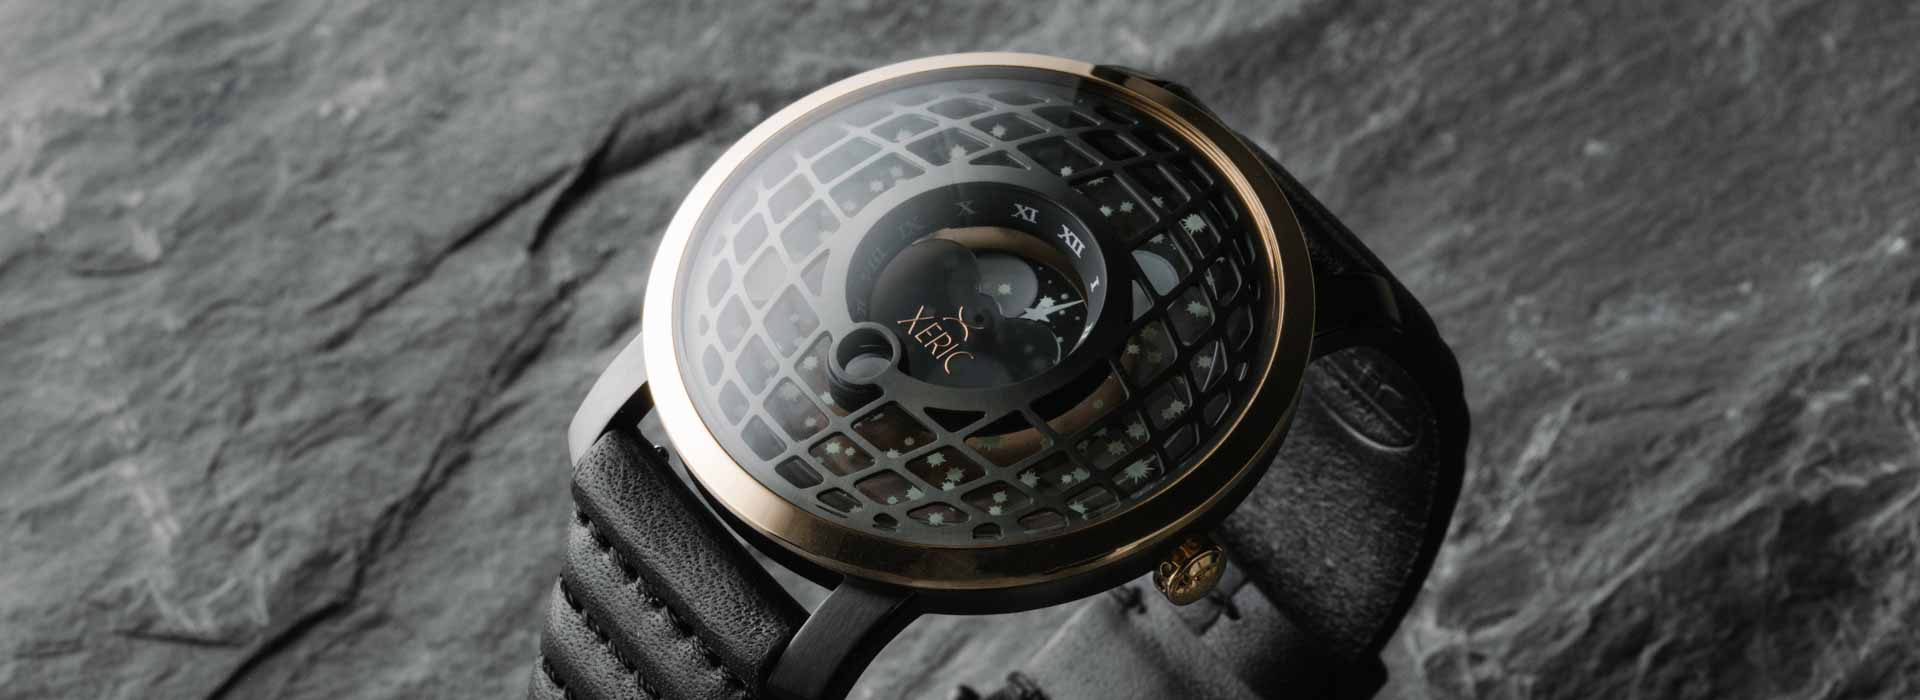 xeric trappist-1 rose gold